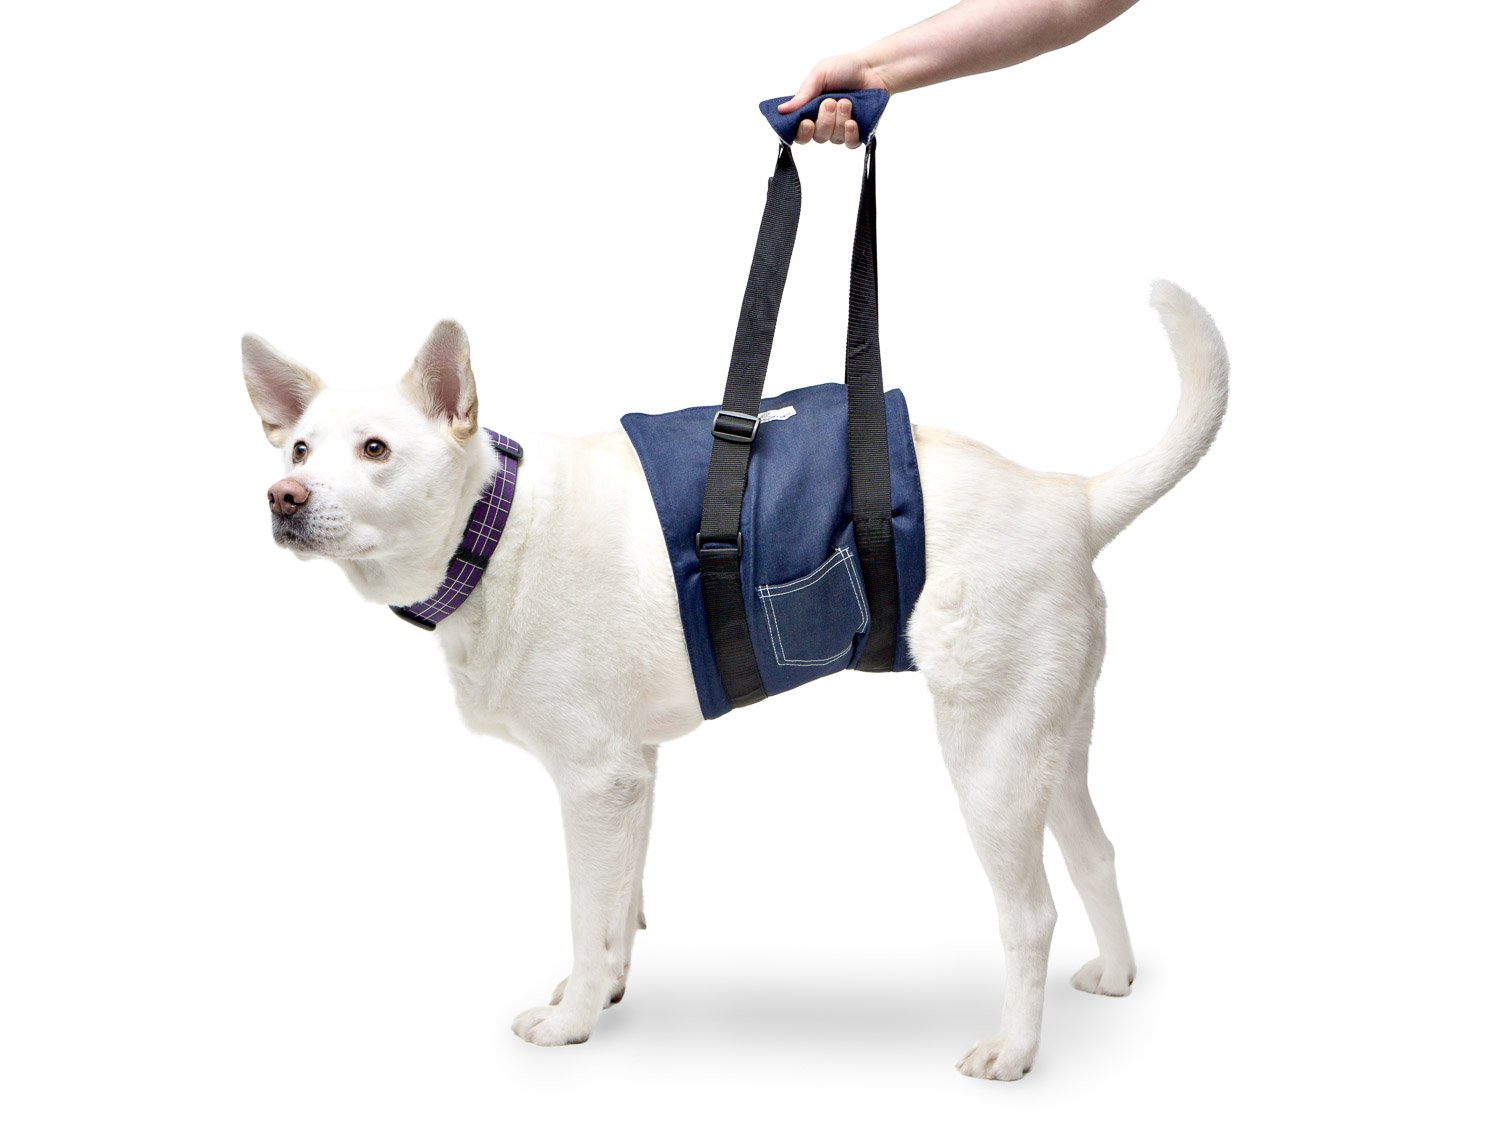 Walkin' Dog Support & Rehabilitation Harness/Sling